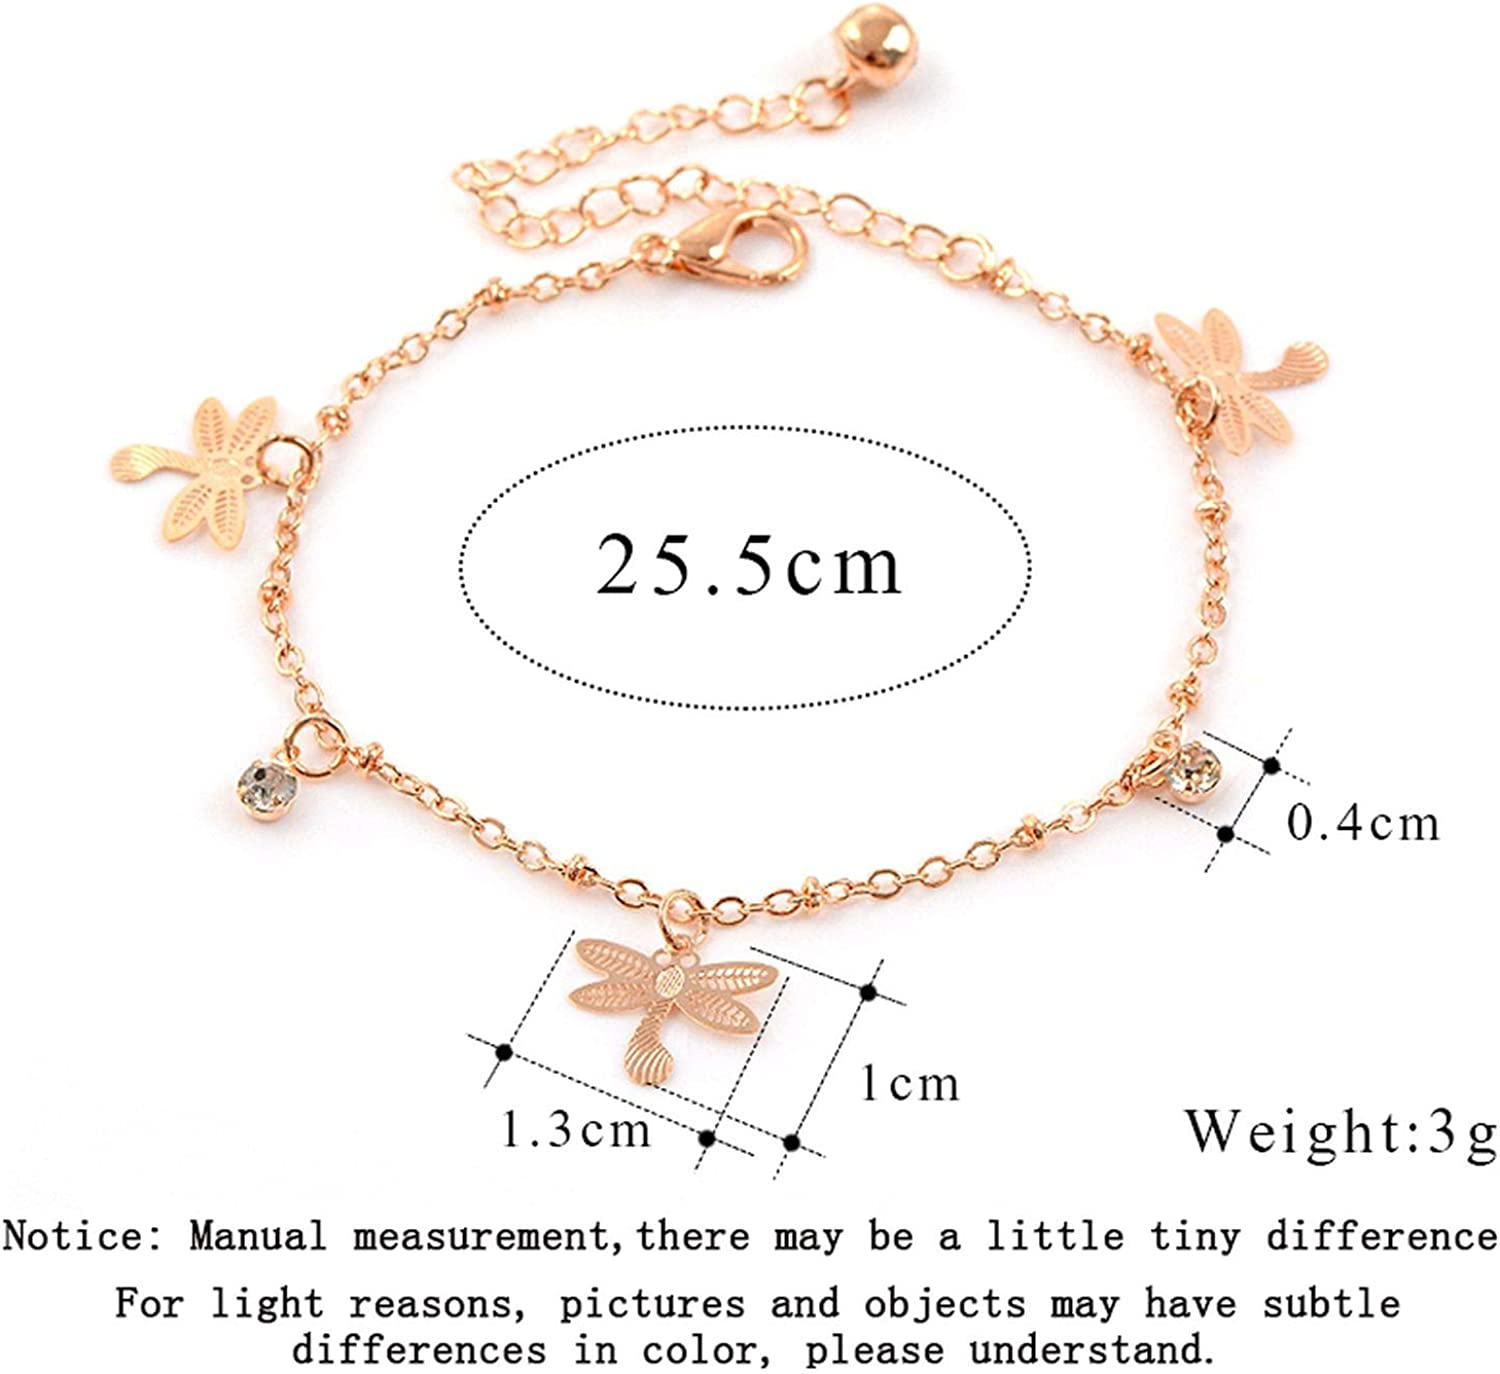 Its-ok Fashion Dragonfly Anklet Bracelet on The Leg for Women Fashion Chain on Foot Girl Beach Ankle Bracelets Jewelry